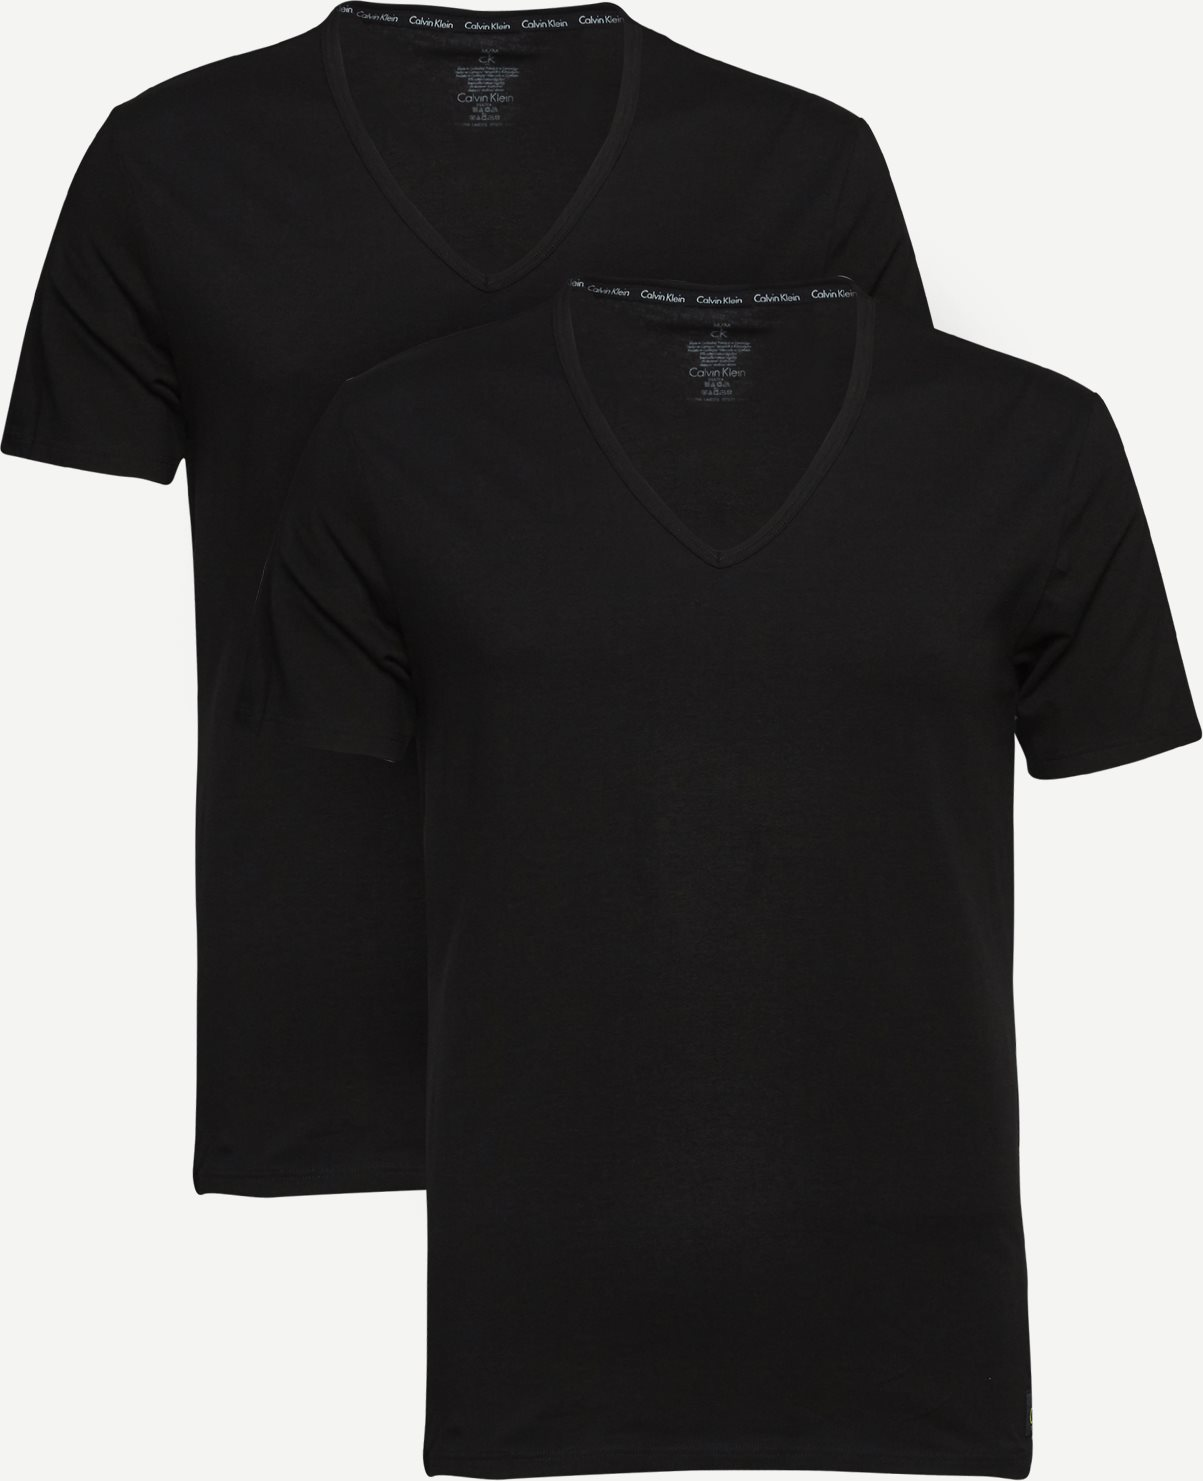 2-pak V-hals t-shirt - Undertøj - Slim fit - Sort